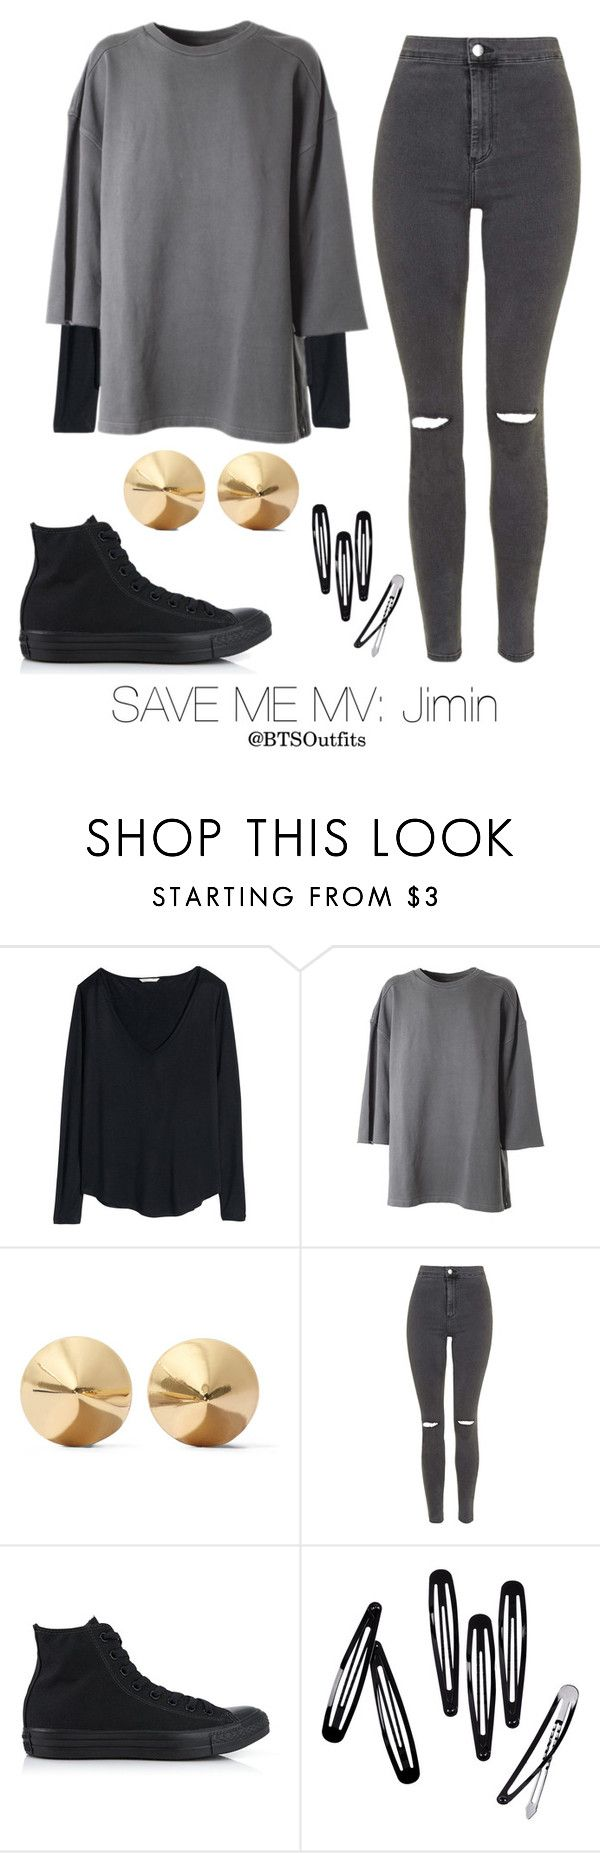 """Save Me MV: Jimin"" by btsoutfits ❤ liked on Polyvore featuring H&M, adidas Originals, Eddie Borgo, Topshop and Converse"